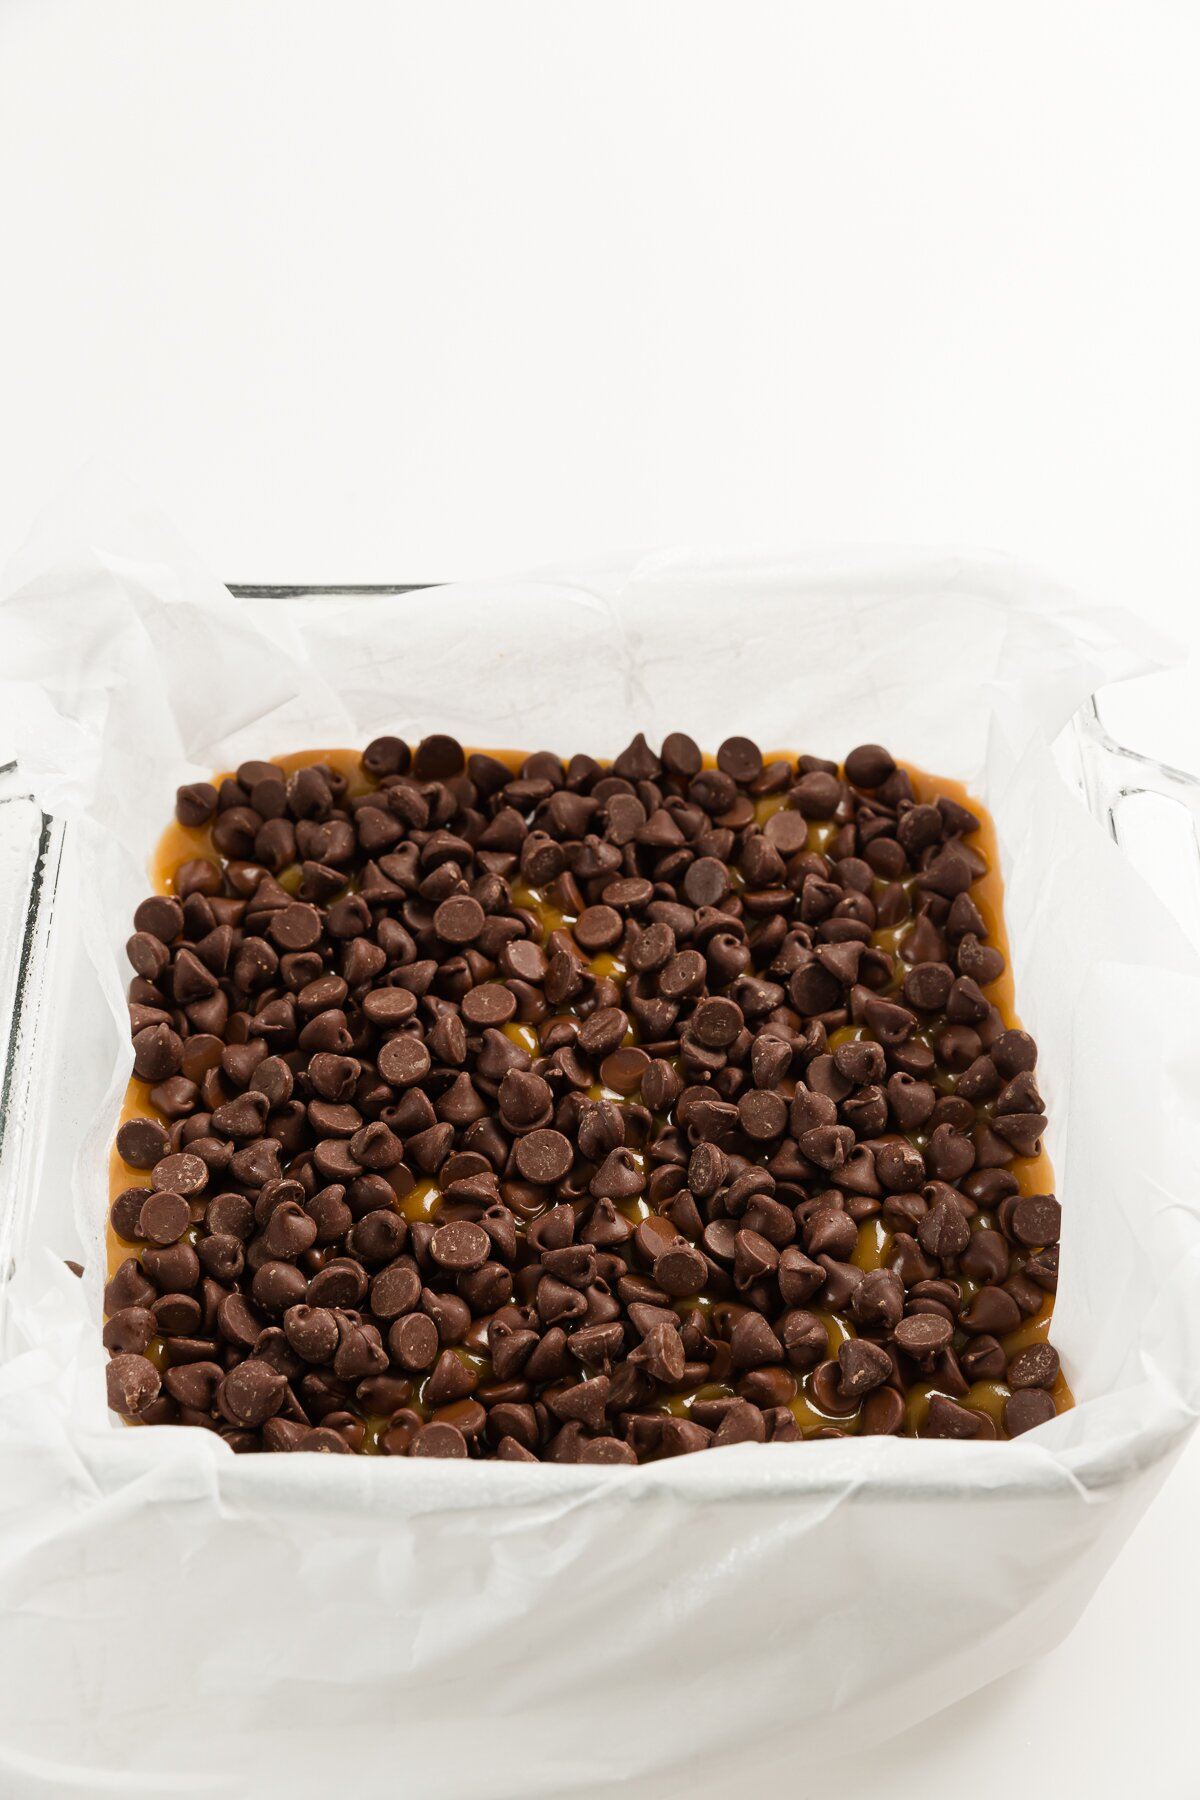 Top down of square dish filled with chocolate chips over toffee